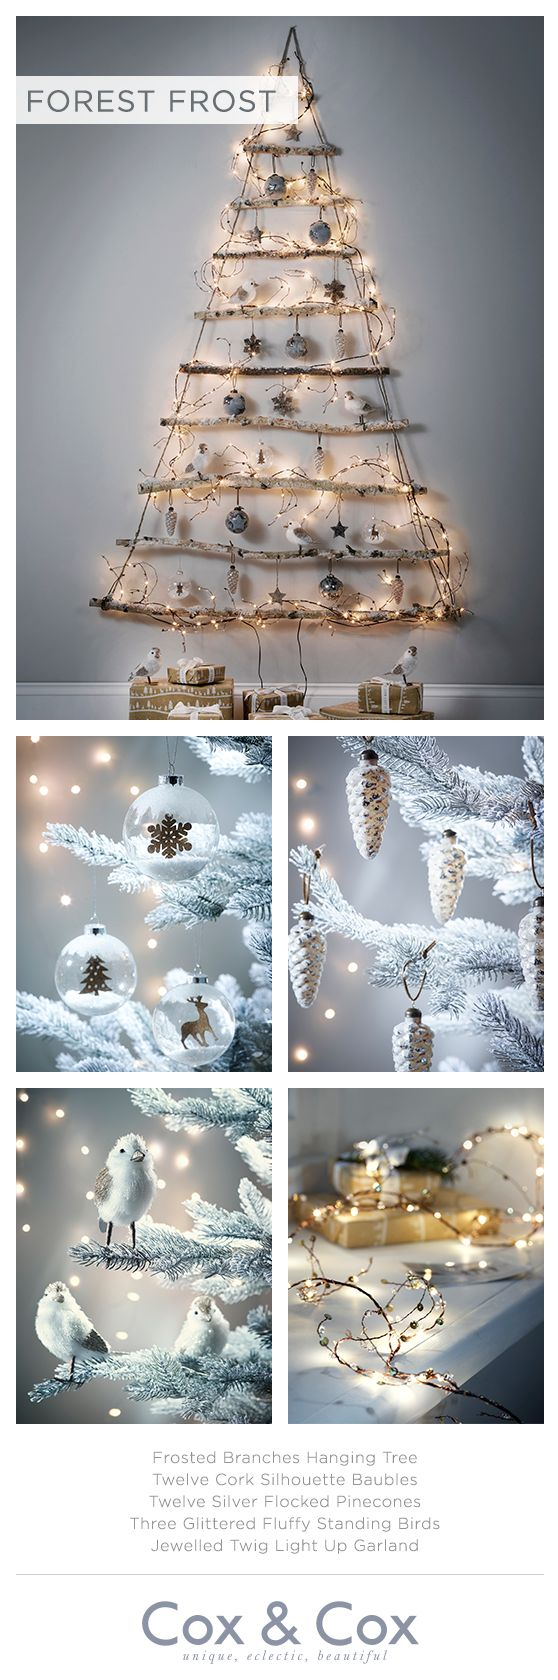 Best images about Christmas decorations on Pinterest Trees